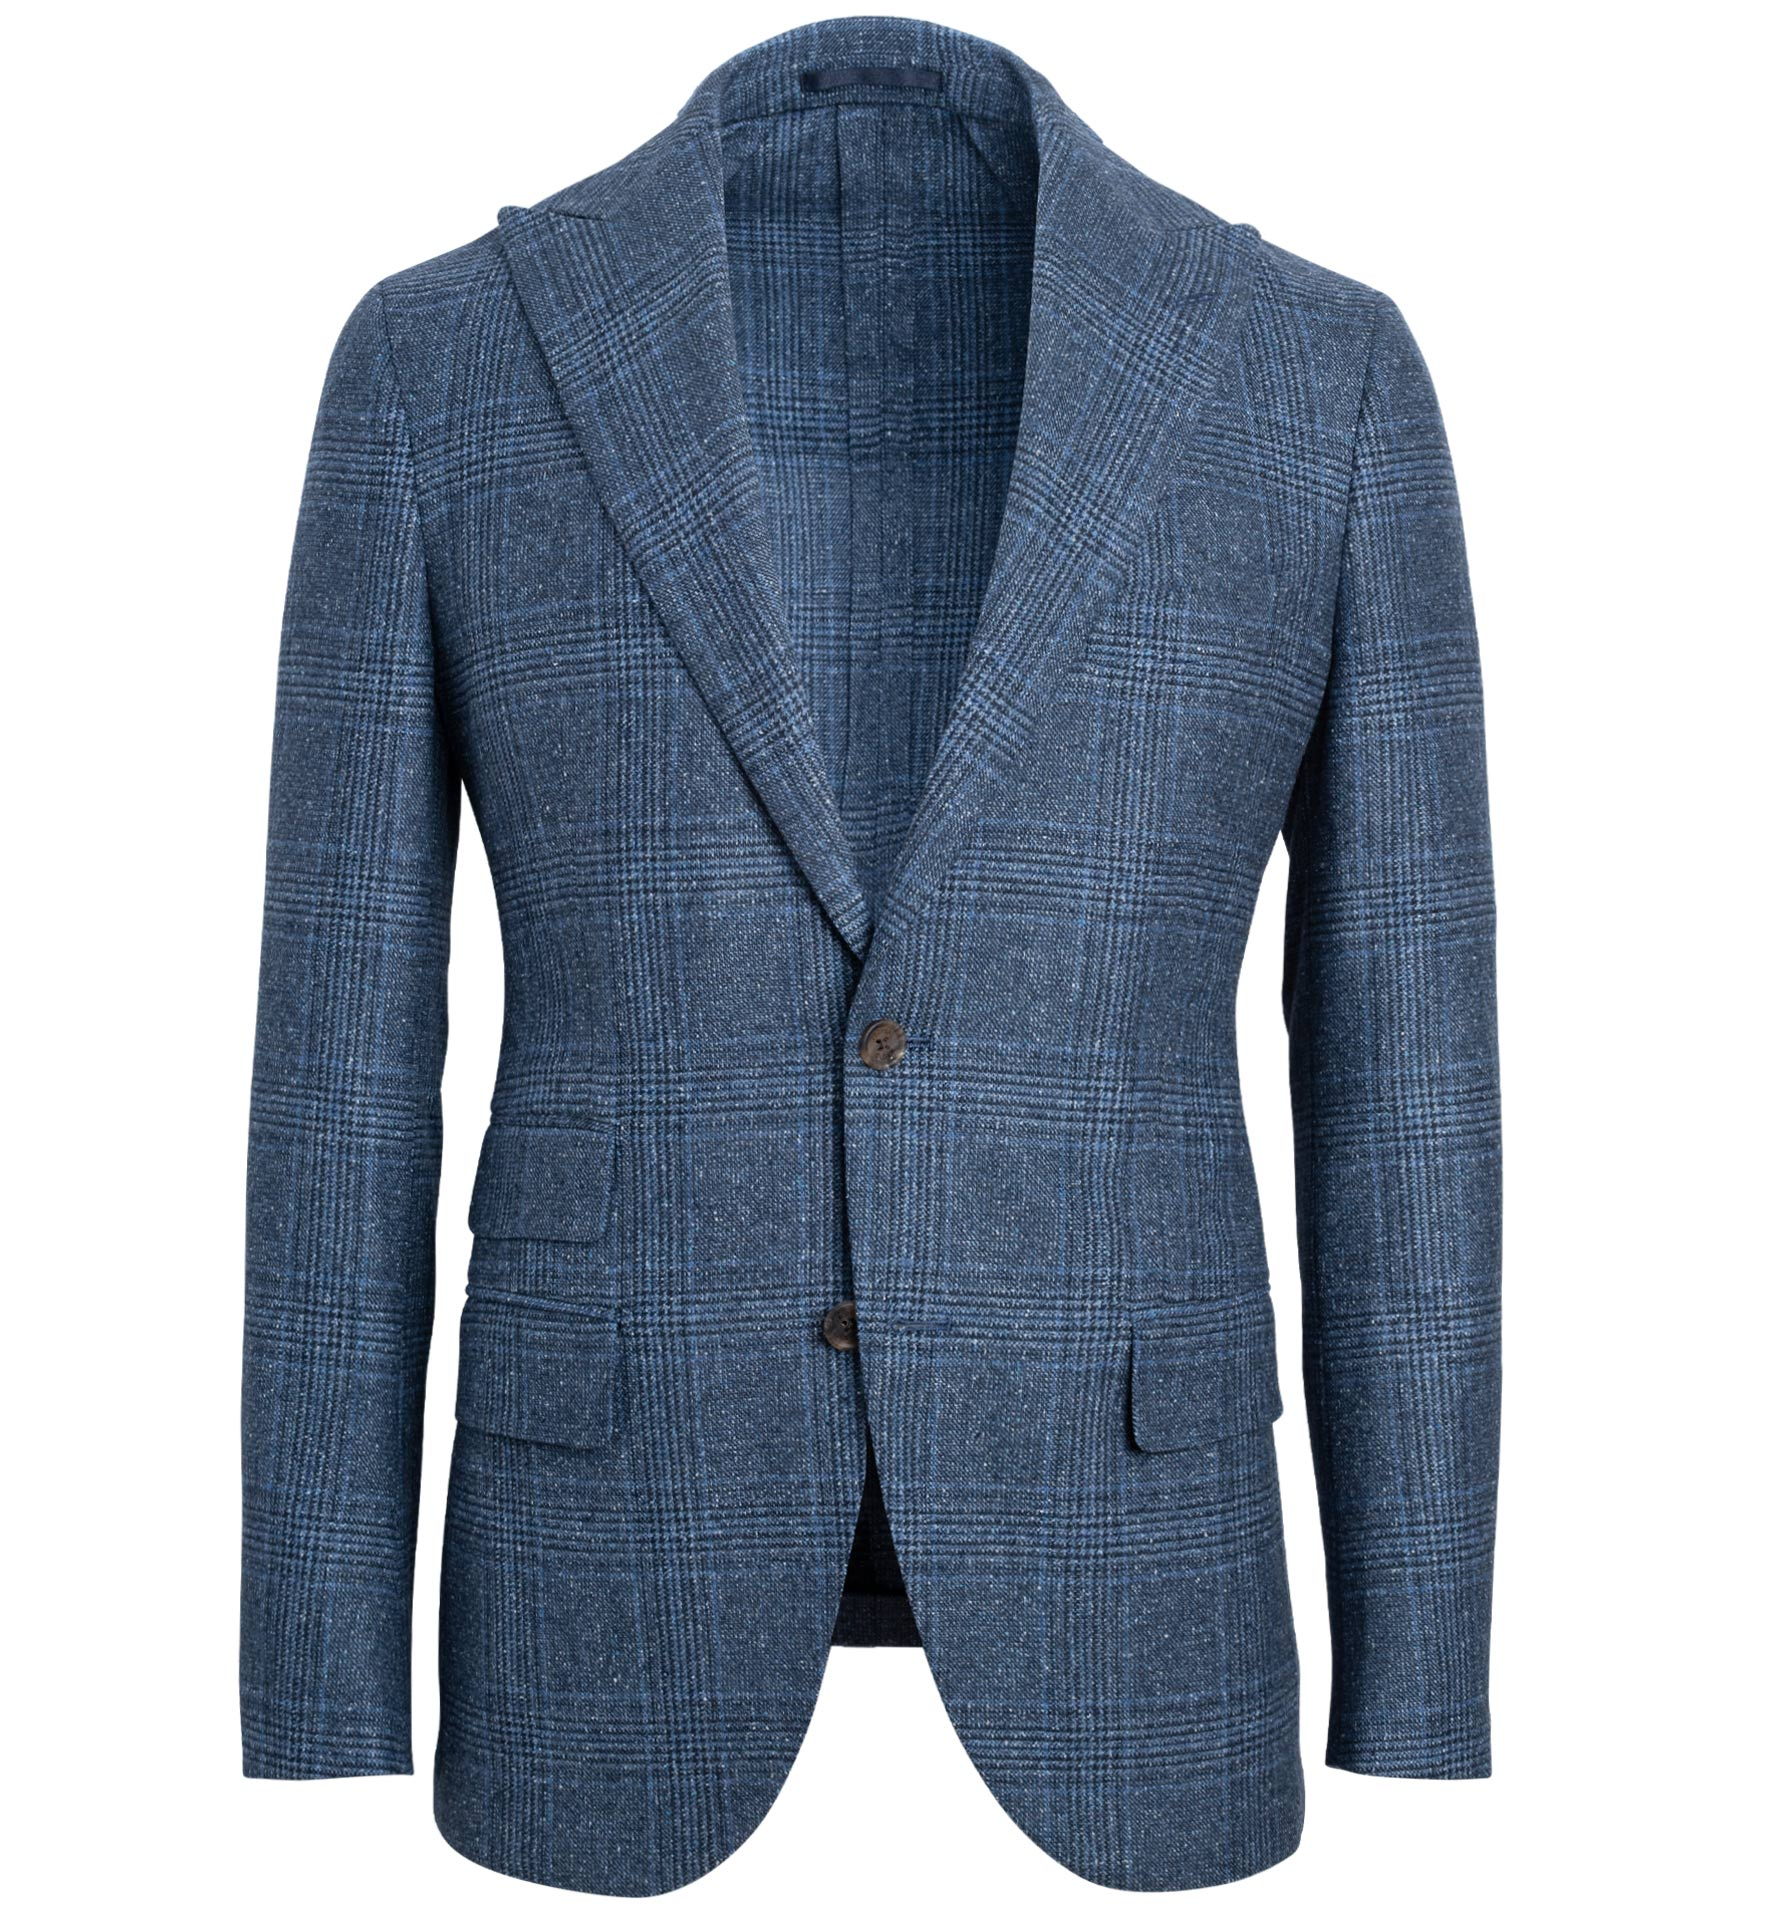 Zoom Image of Bedford Blue Plaid Donegal Wool and Silk Jacket